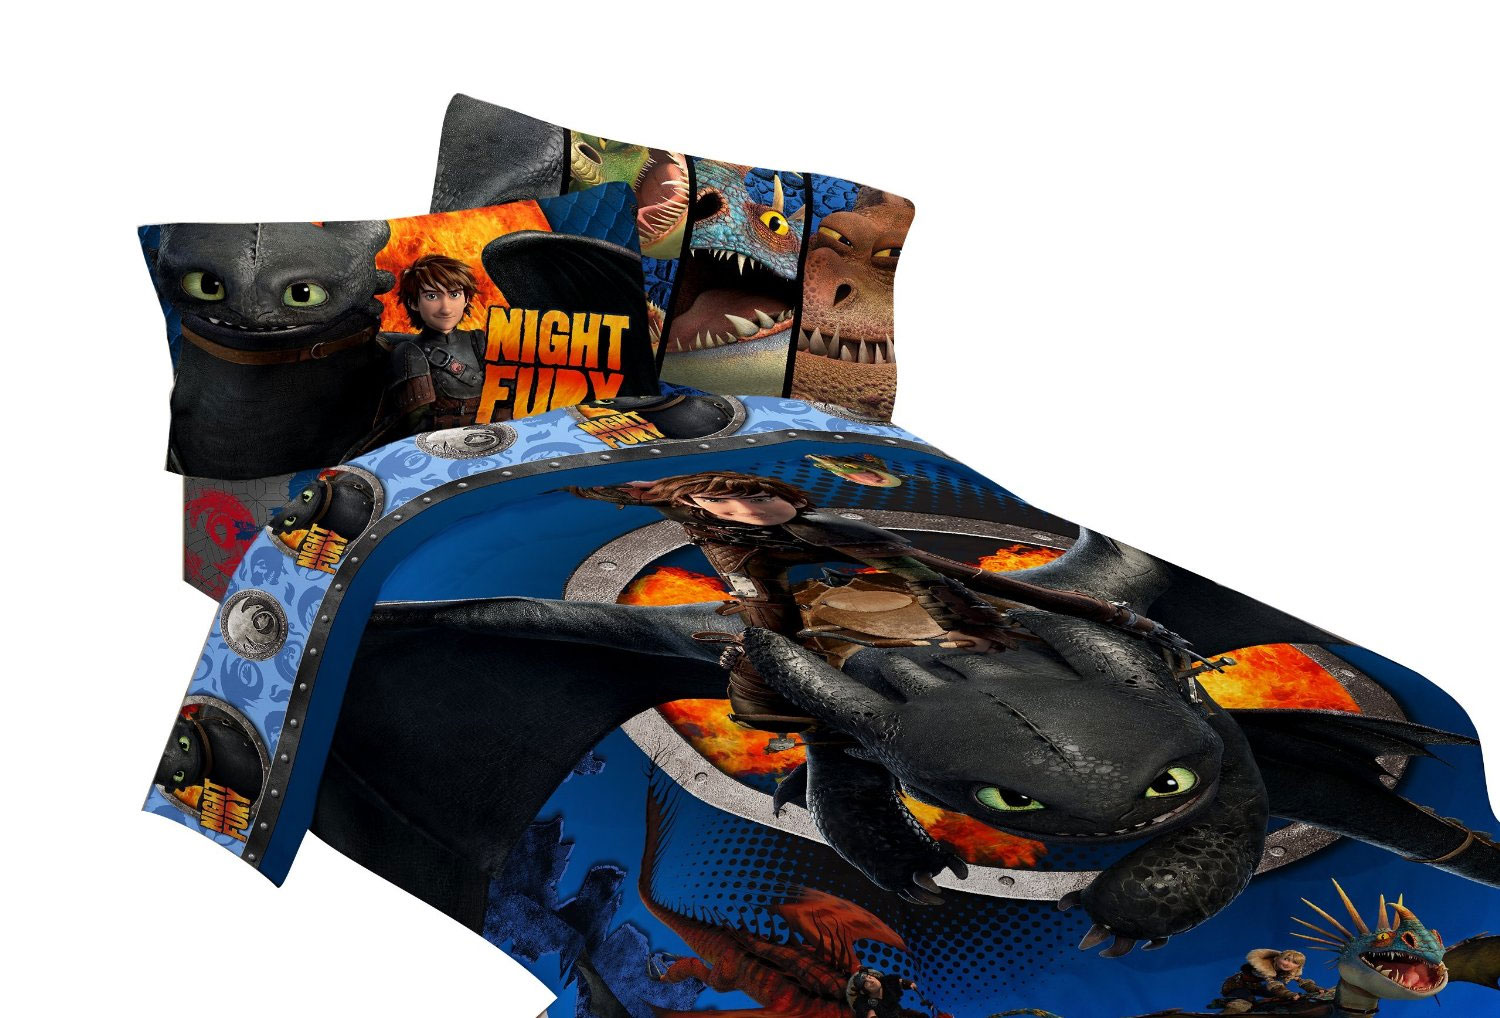 How to Train Your Dragon Twin Comforter - Hiccup and Toothless Dragon Flyer Bedding MJ429C